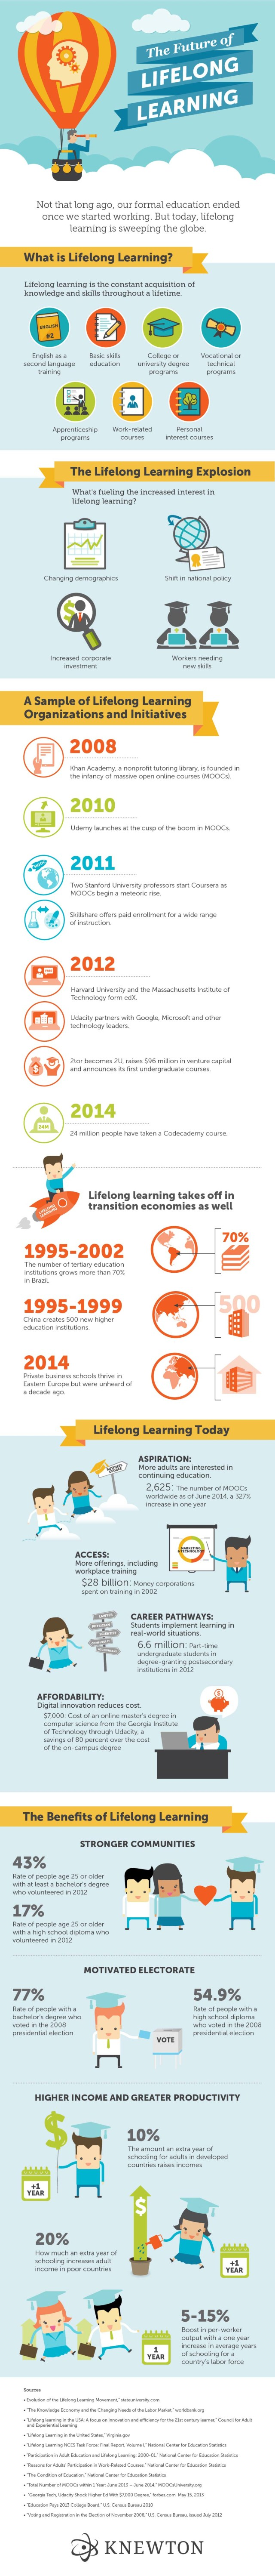 Knewton_Lifelong_Learning_Infographic-3